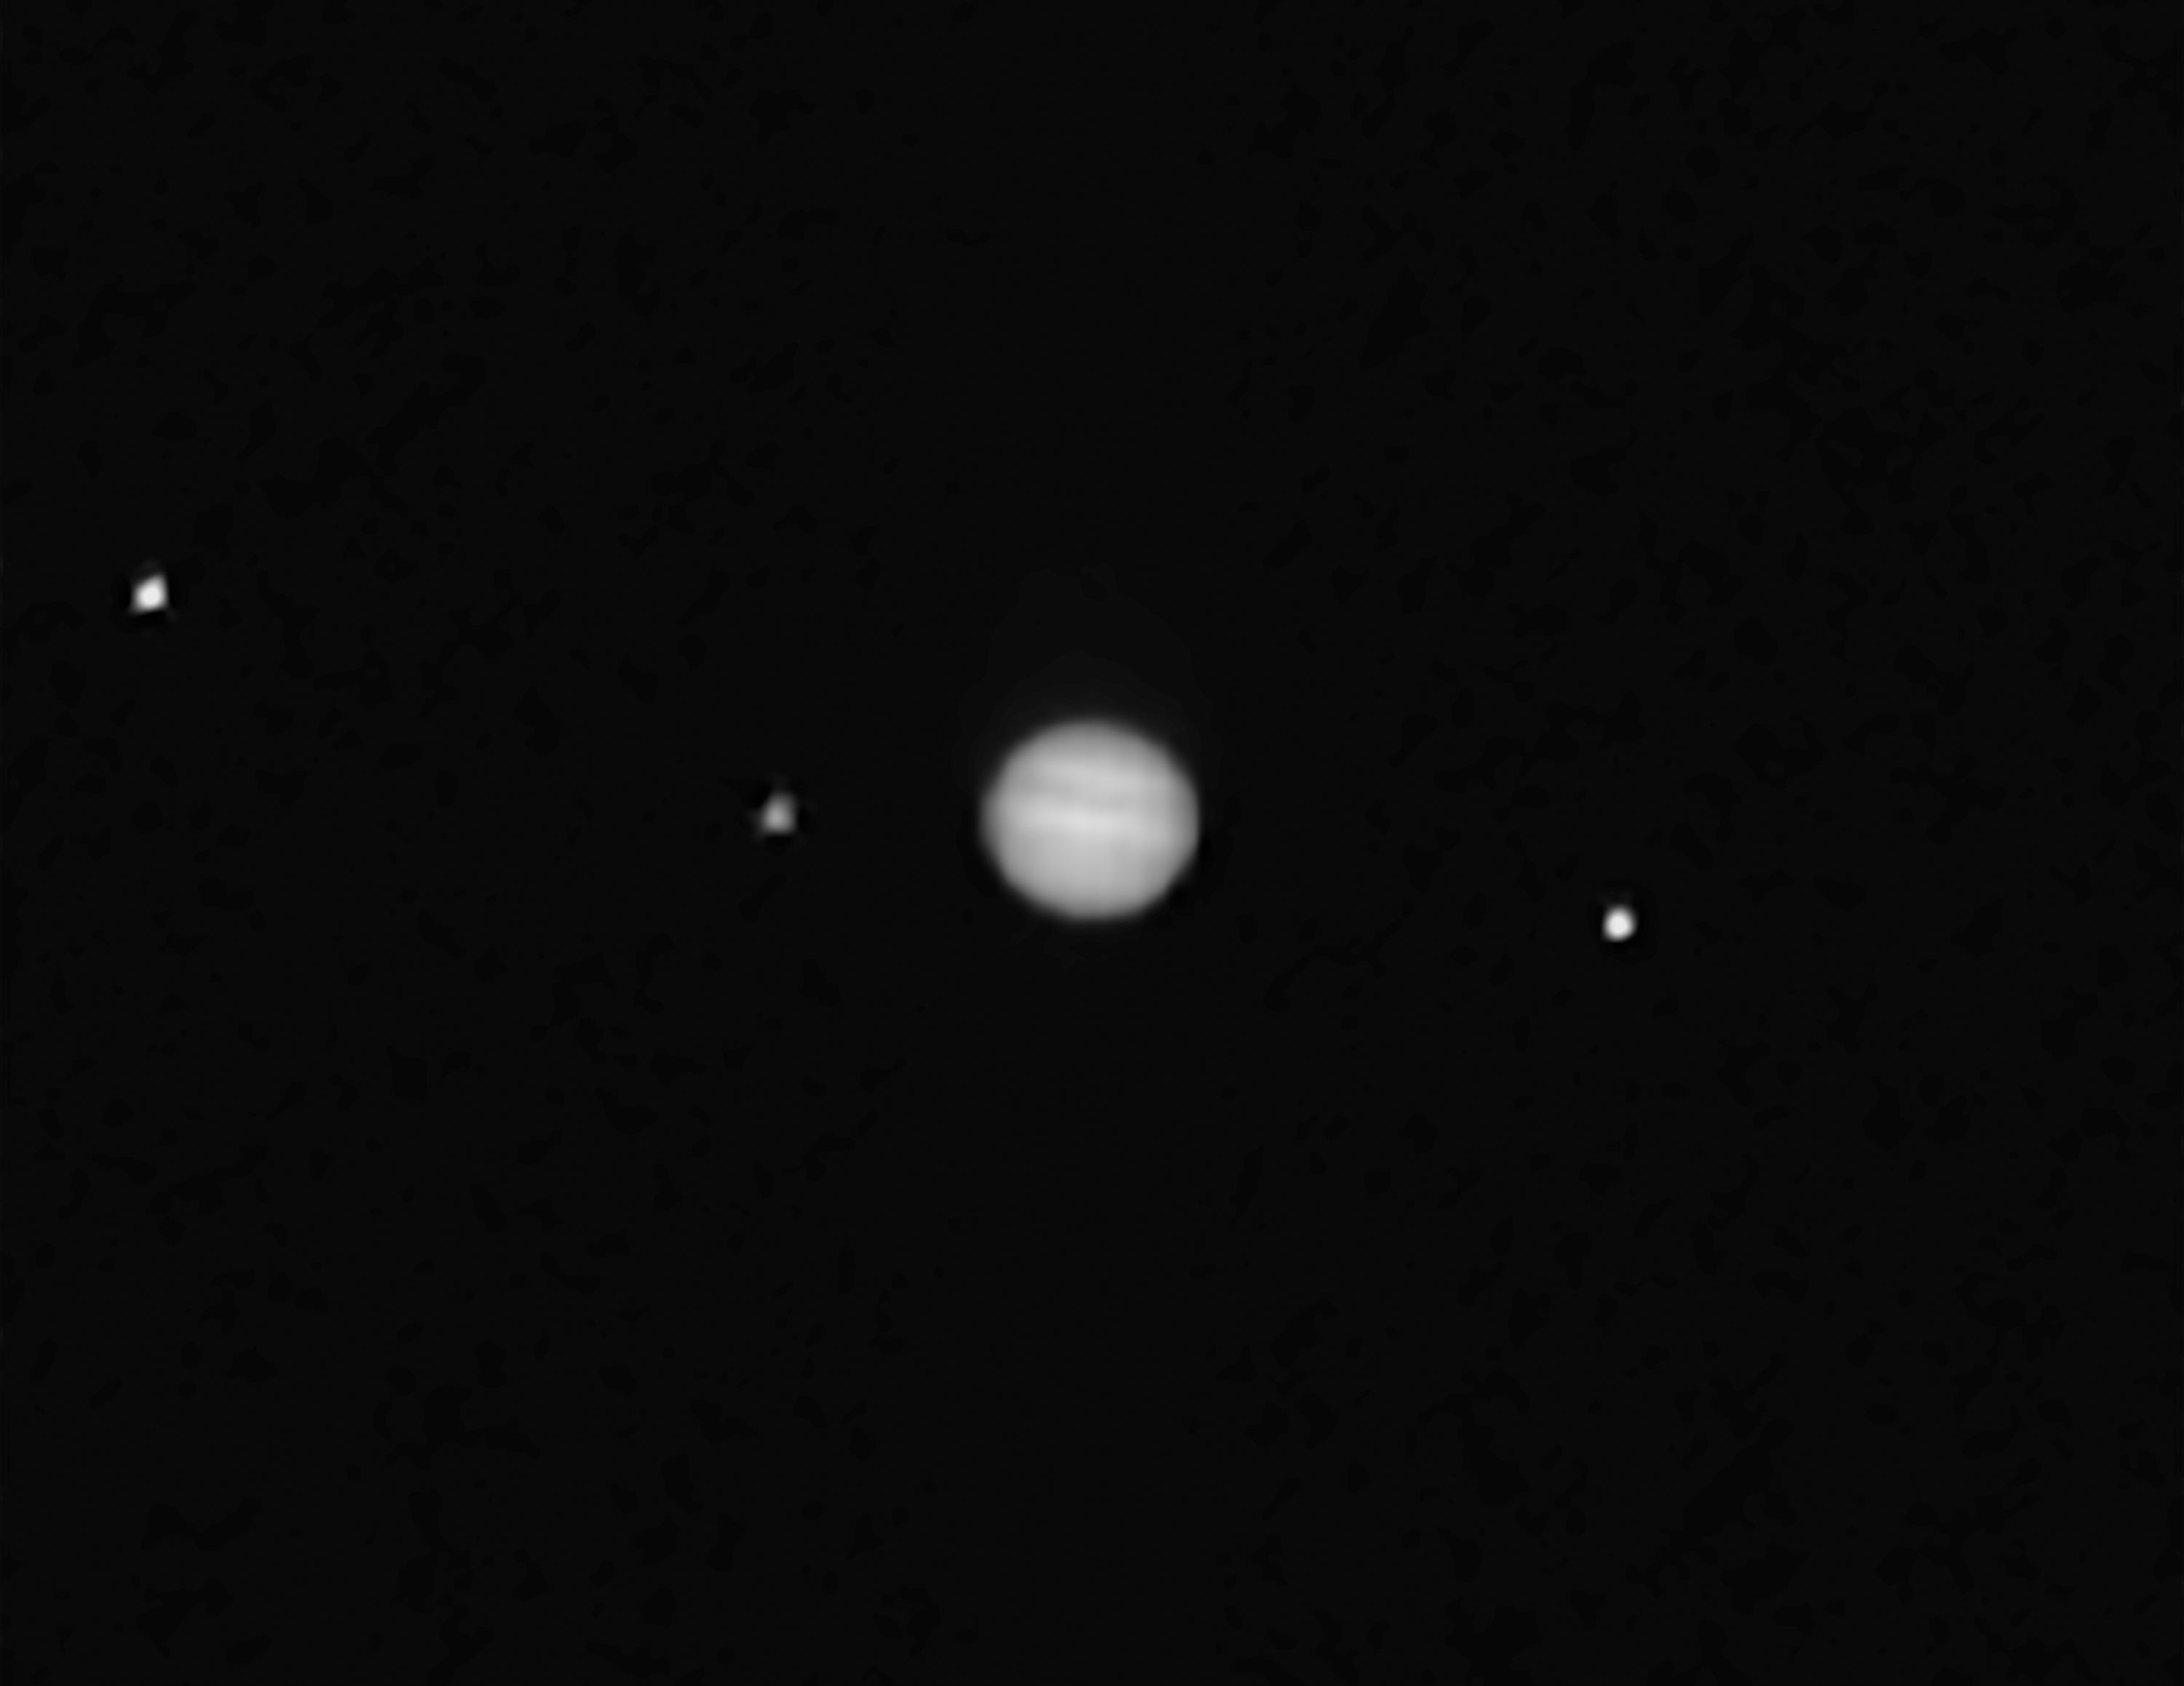 OSIRIS-REx Takes Its First Images of Jupiter and Galilean ...